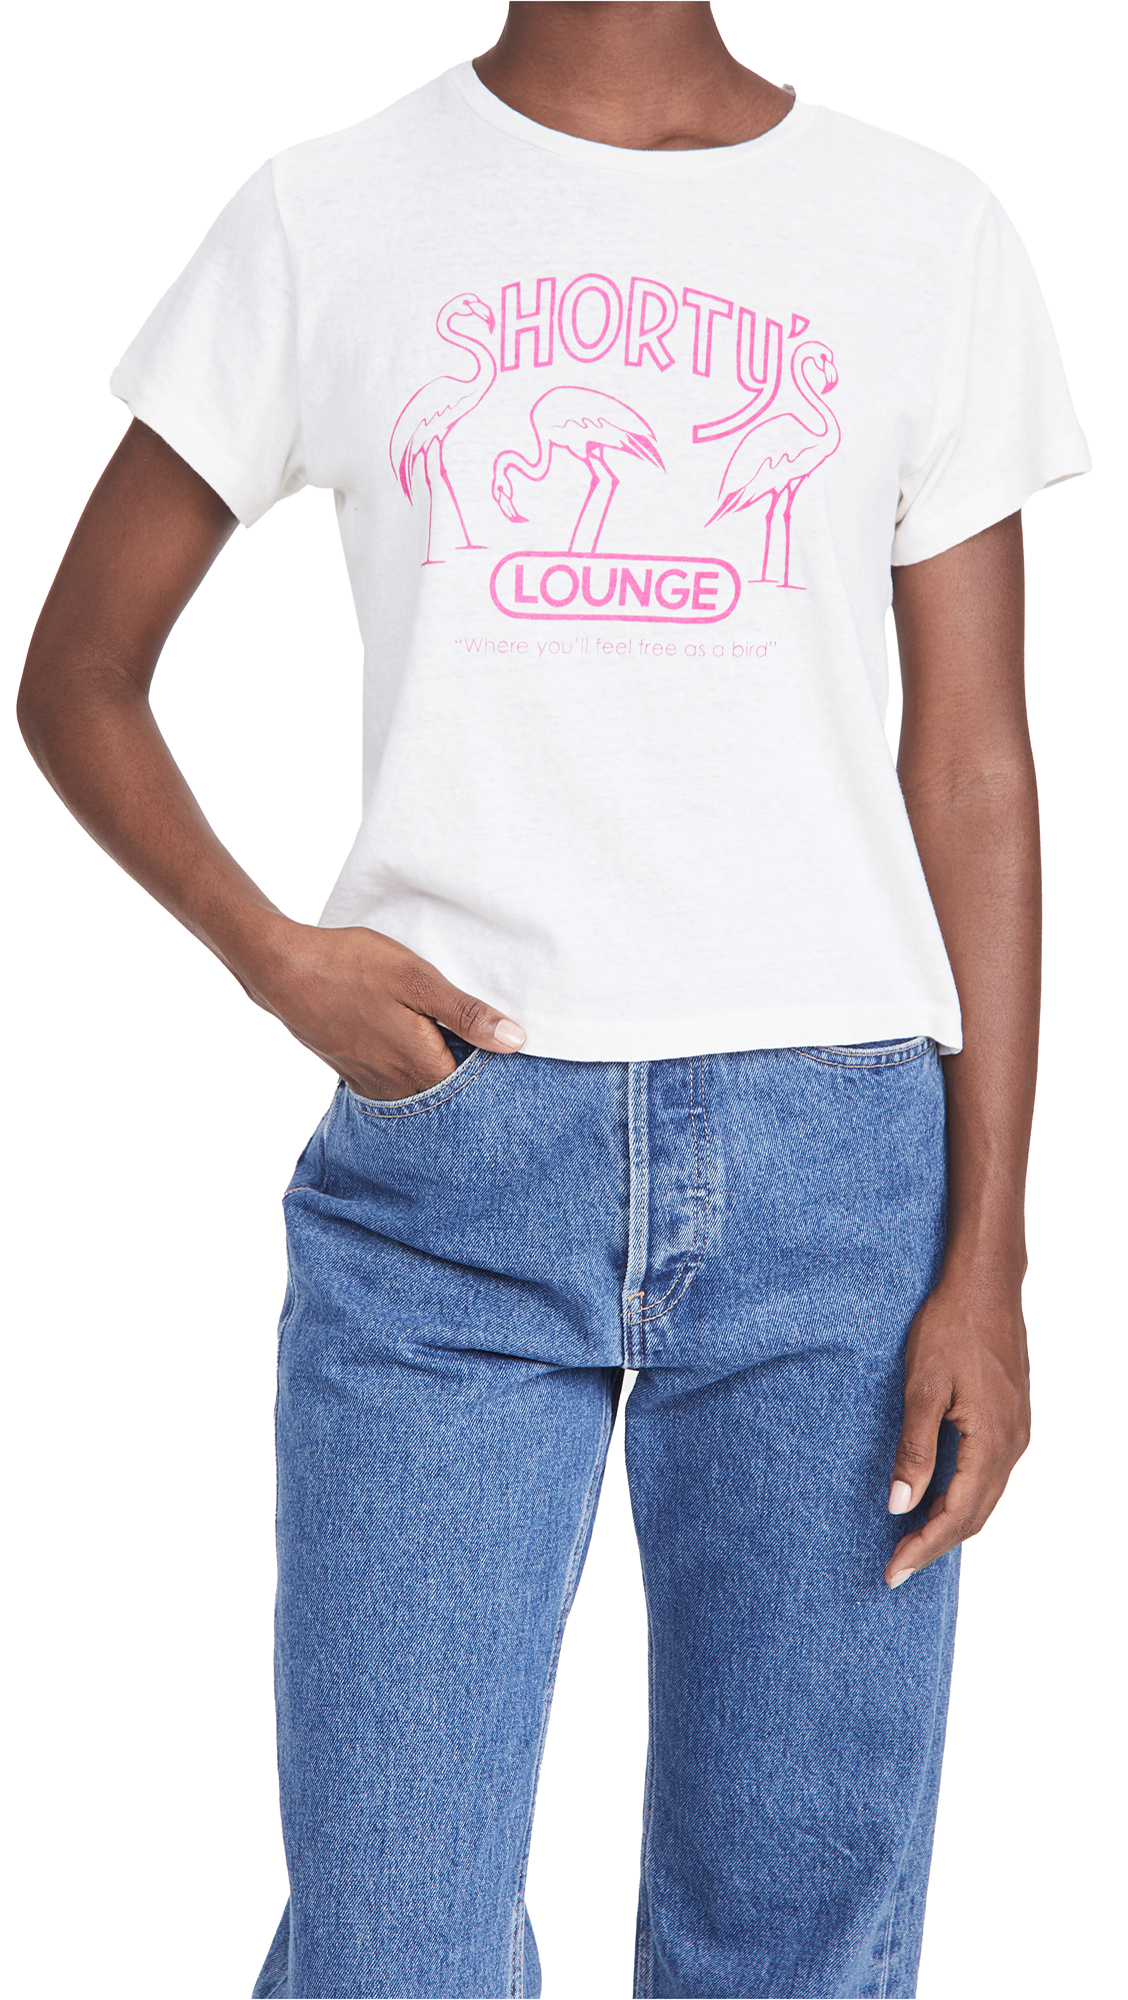 RE/DONE Shorty's Classic Tee